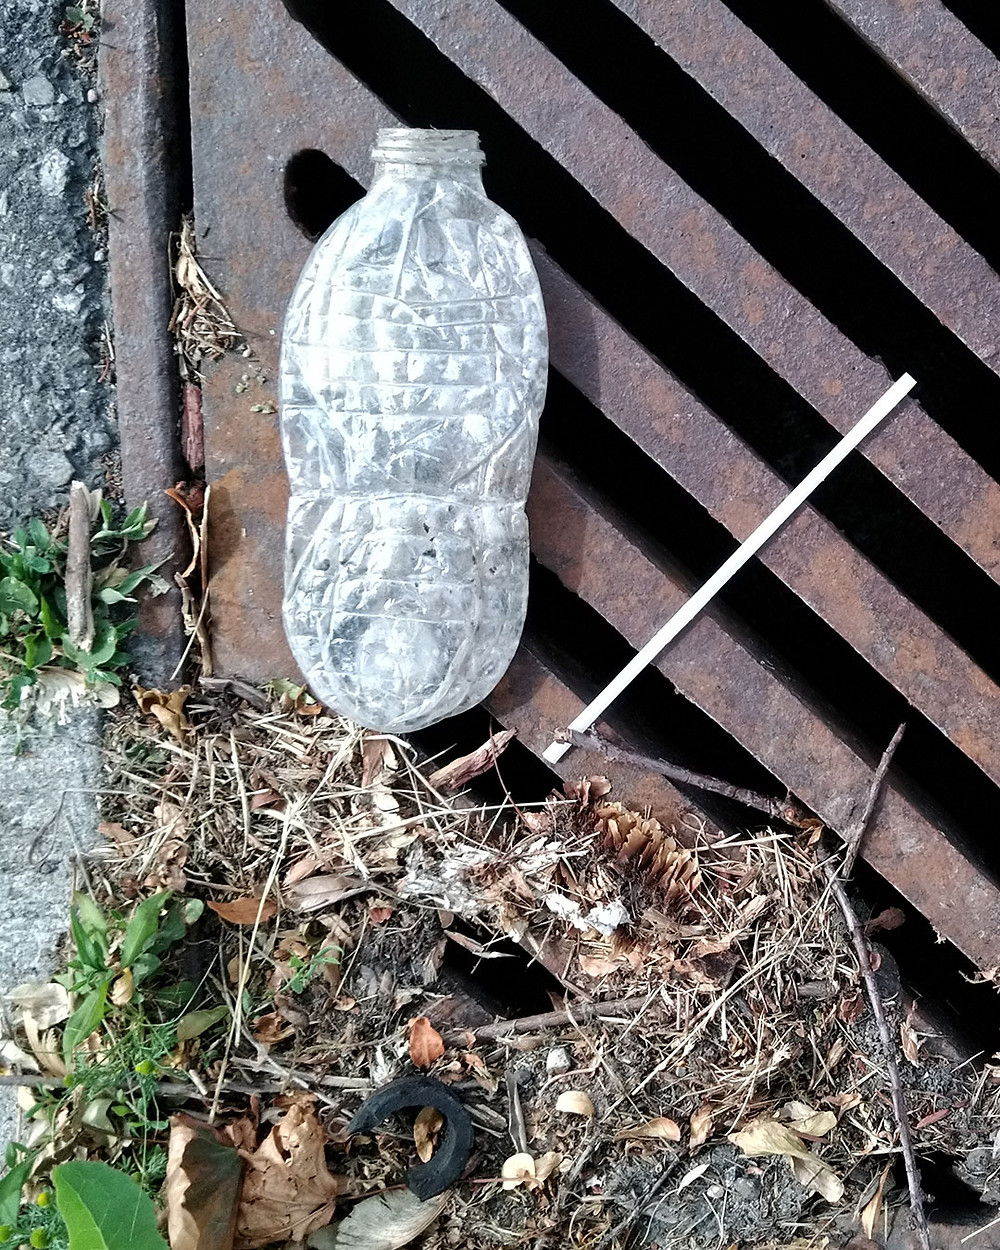 littered plastic bottle and straw